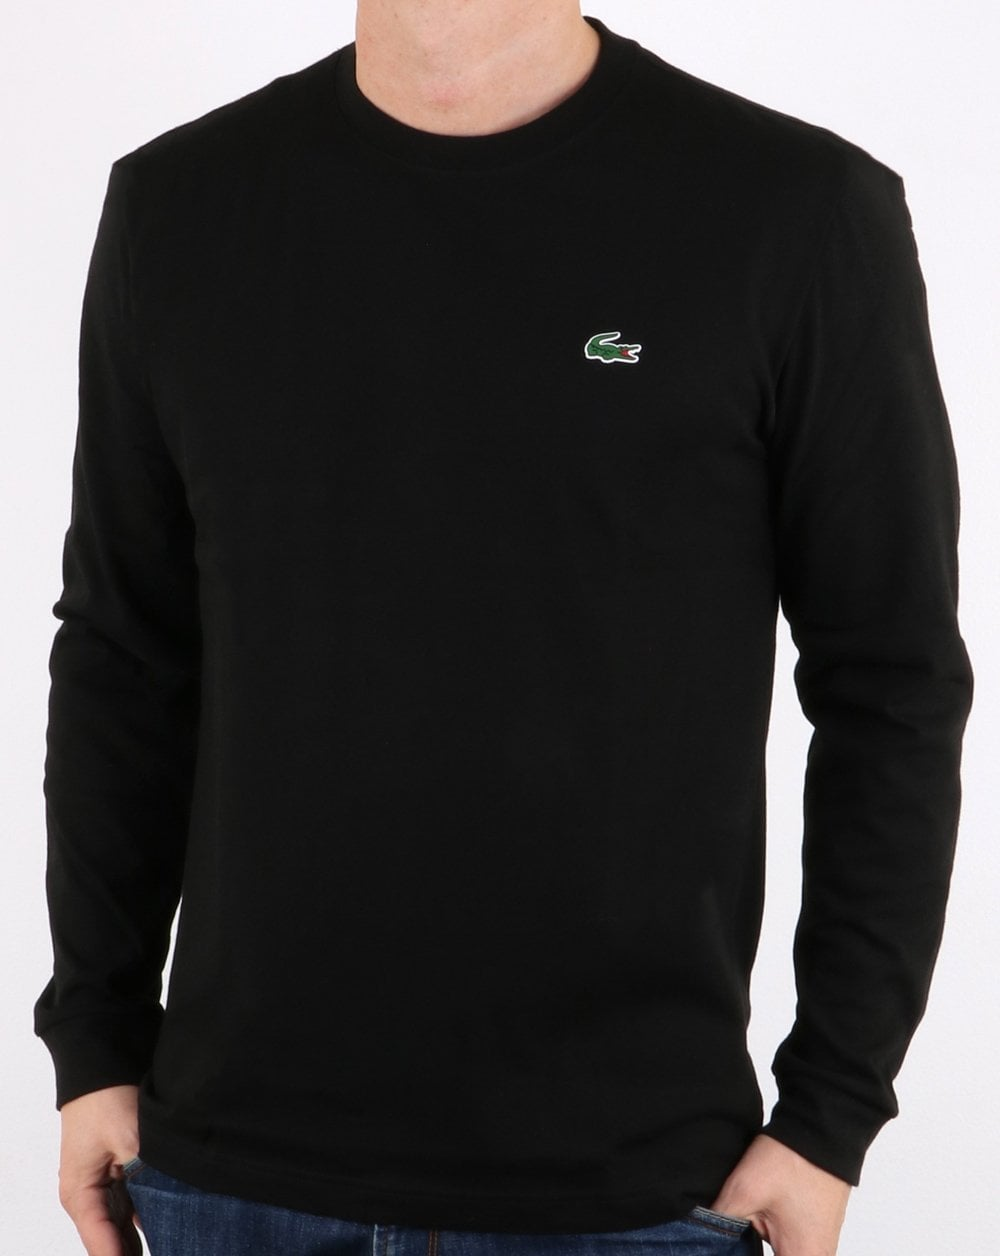 b0acc0a55b Lacoste Long Sleeve T-Shirt Black